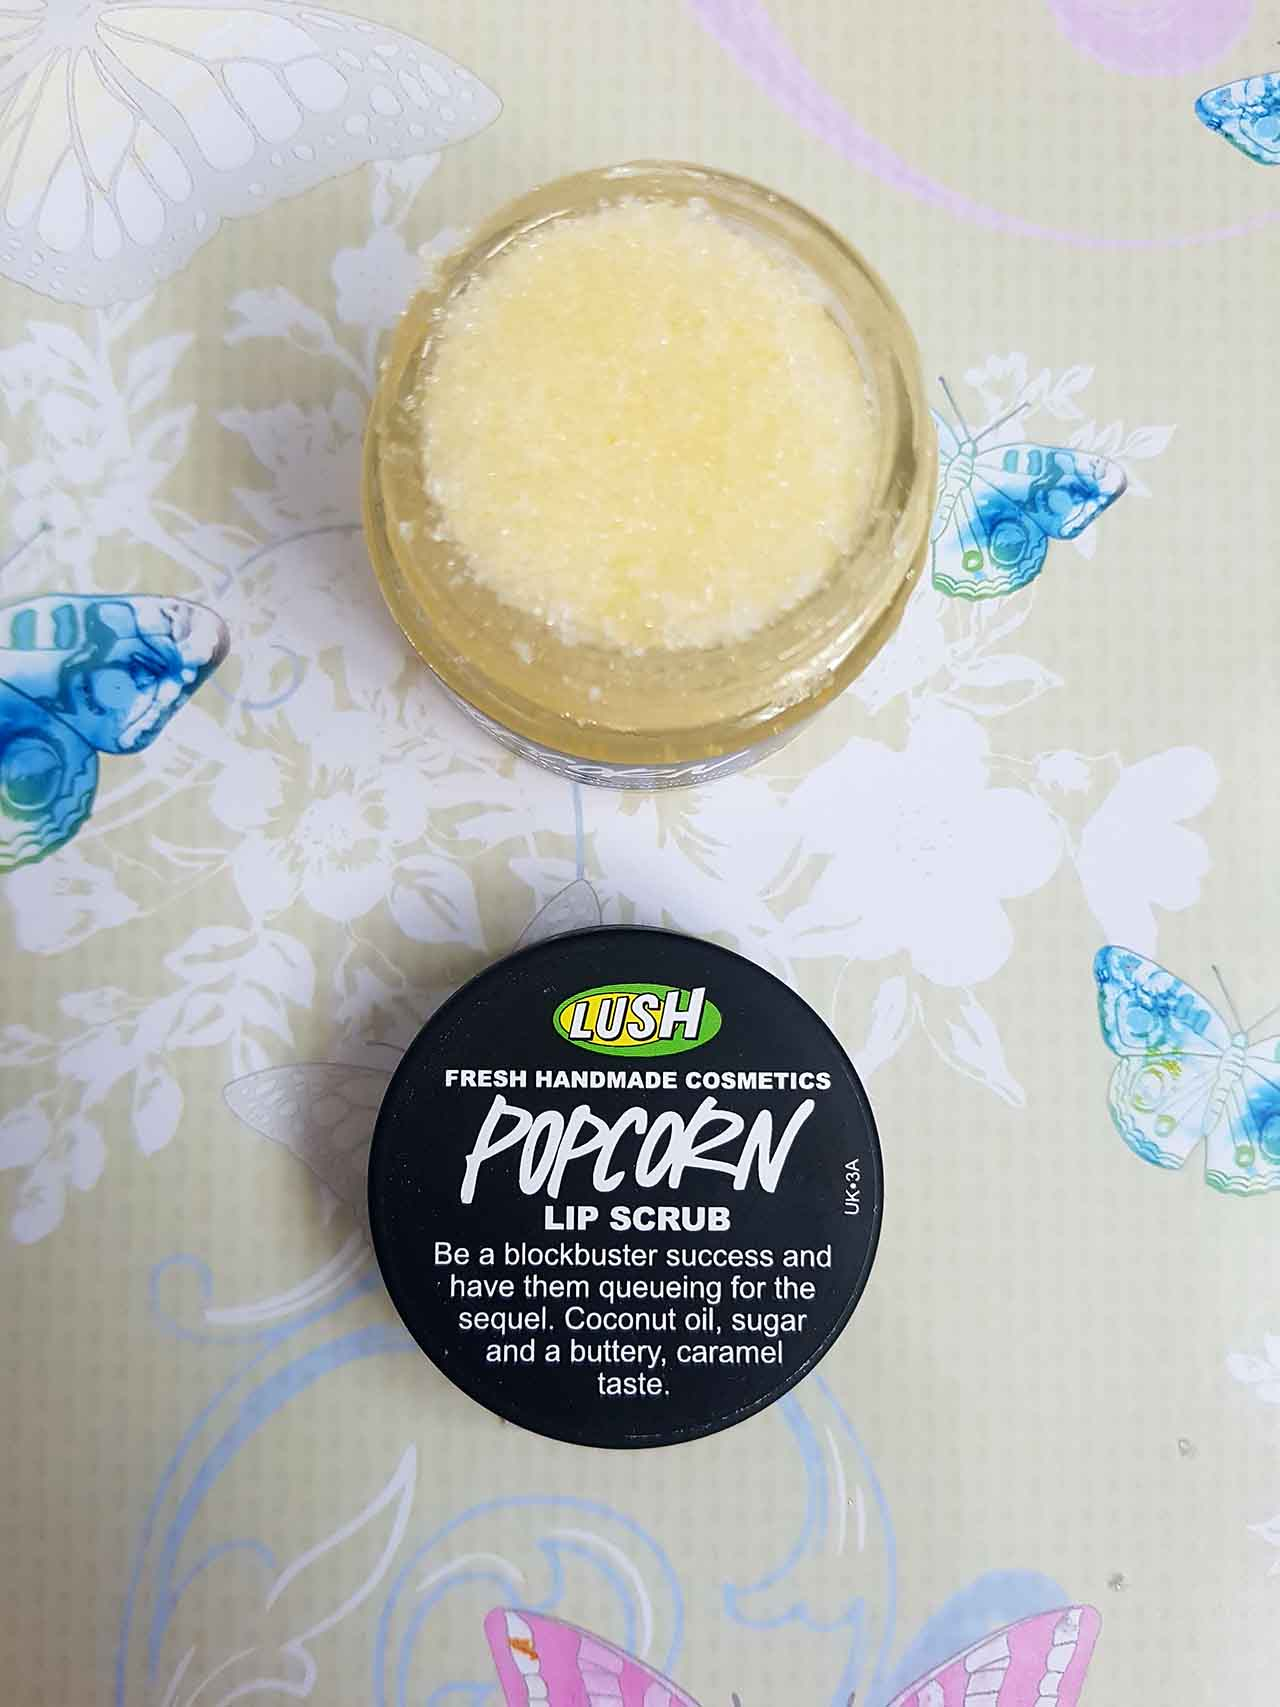 Lush Fresh Handmade Cosmetics – How Lush Are They: The Popcorn Lip Scrub - This lip scrub is designed to soften and moisturize your lips. It contains coconut oil, polenta and popping candy! All the ingredients result in a caramel tasting and smelling edible scrub and it's just lovely. My lips definitely felt soft and smooth after use and you don't even need to rinse your lips after using it as you can just eat what's on your lips and let the oil that remains sink into the skin! The texture of the scrub is grainy but not too harsh or abrasive and you only need a tiny amount each time you use it.